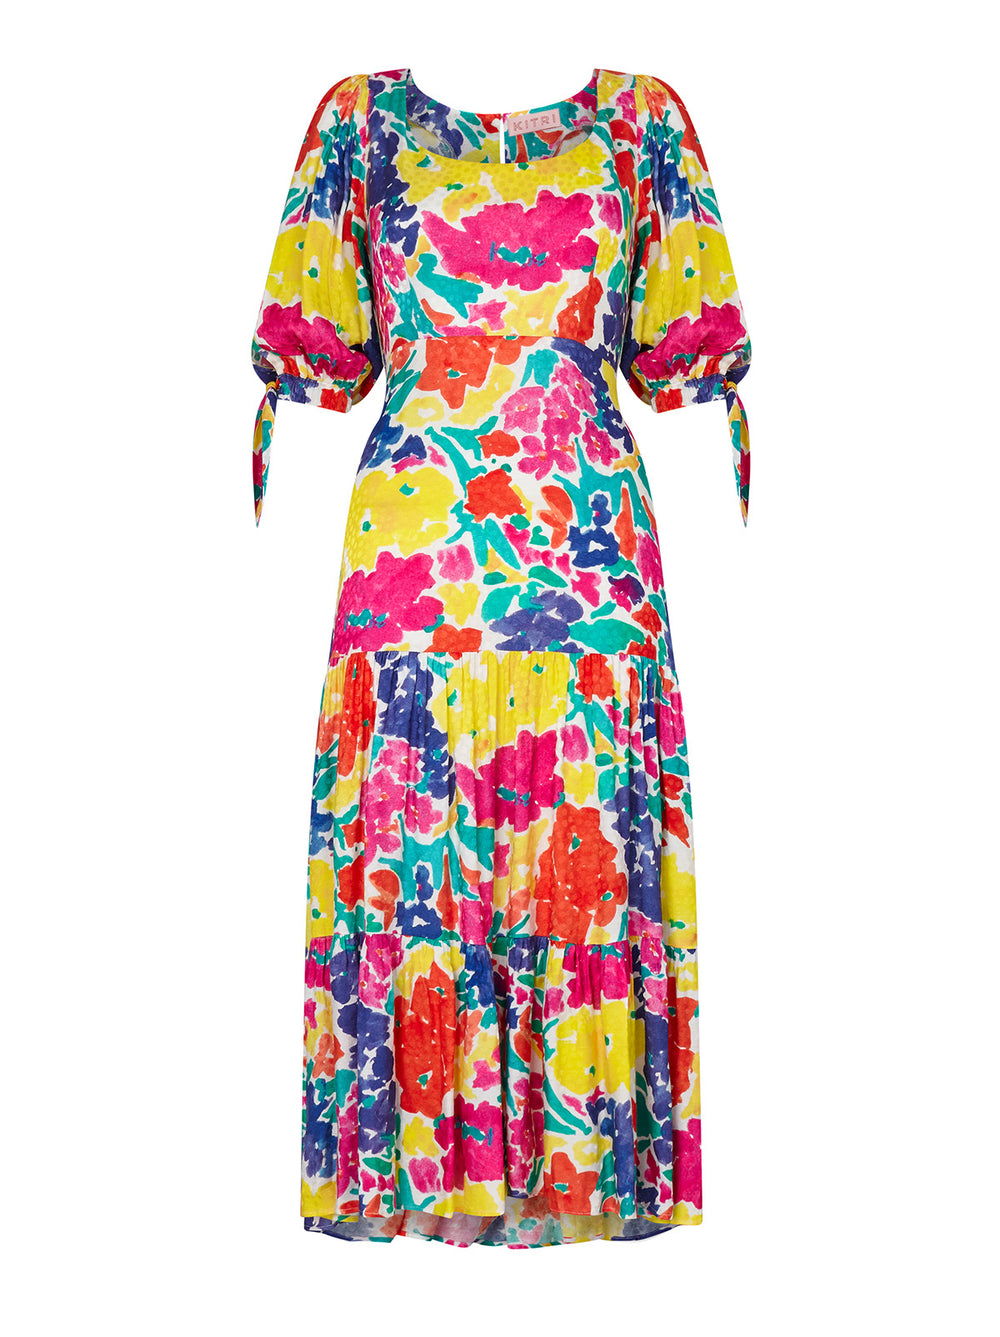 Darcy Printed Jacquard Dress by KITRI Studio